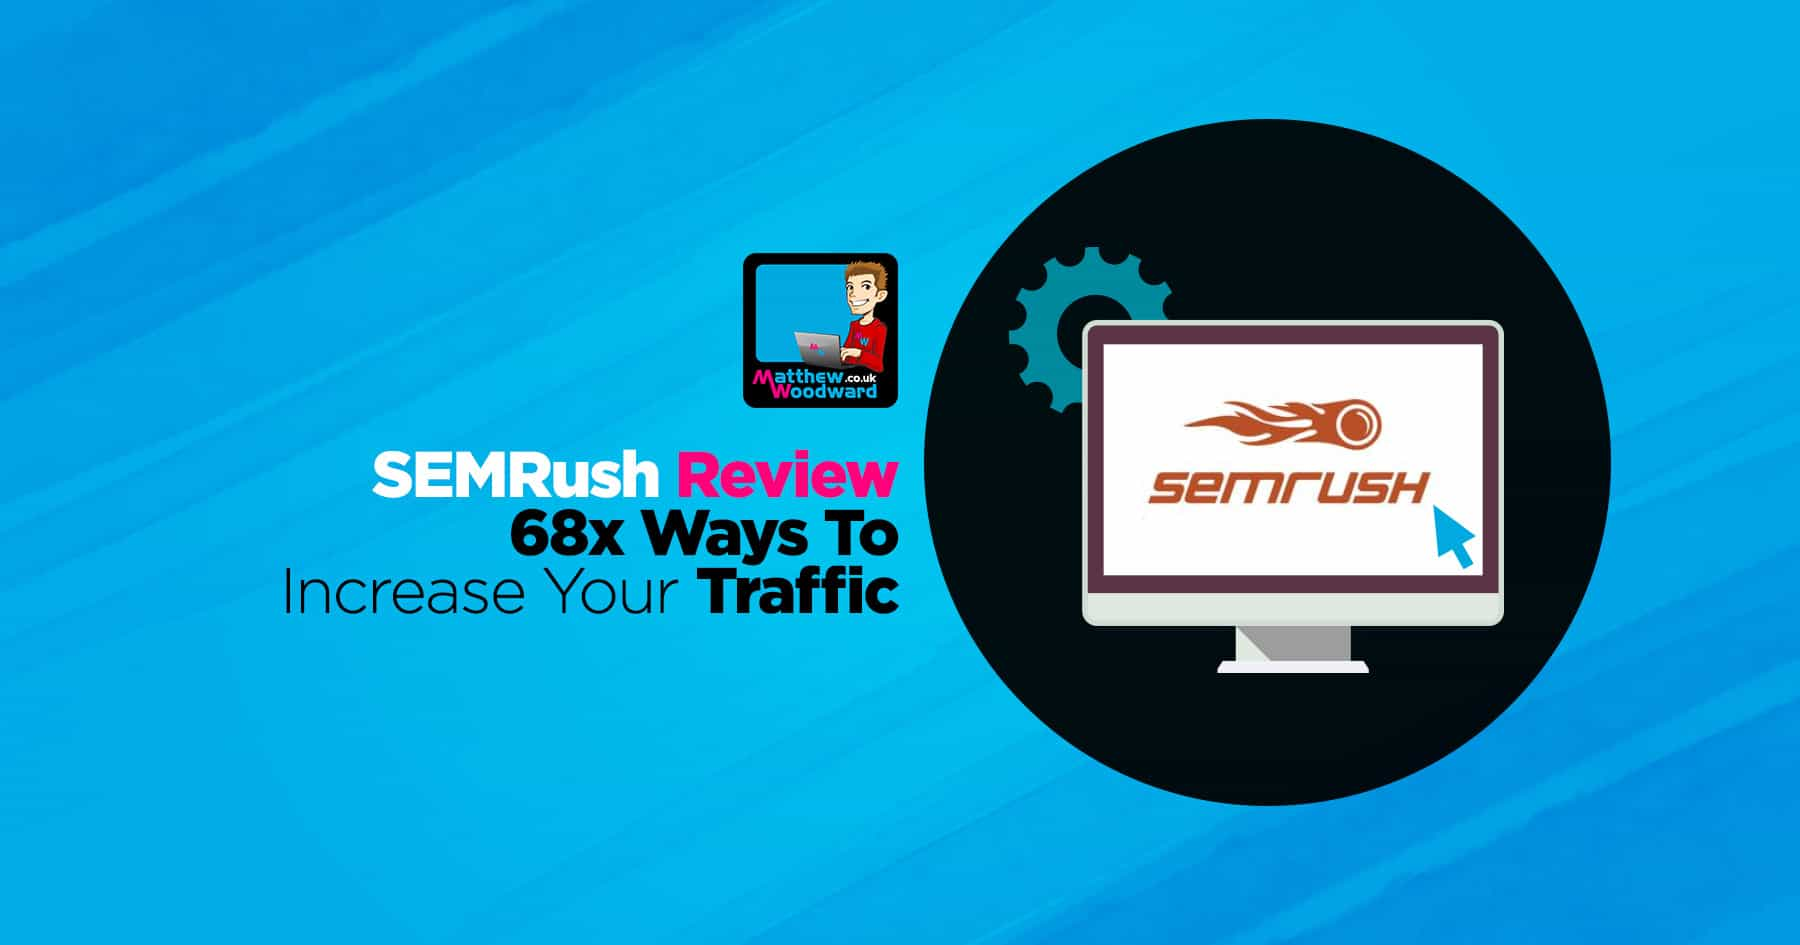 Semrush Seo Software Outlet Coupon Reddit 2020